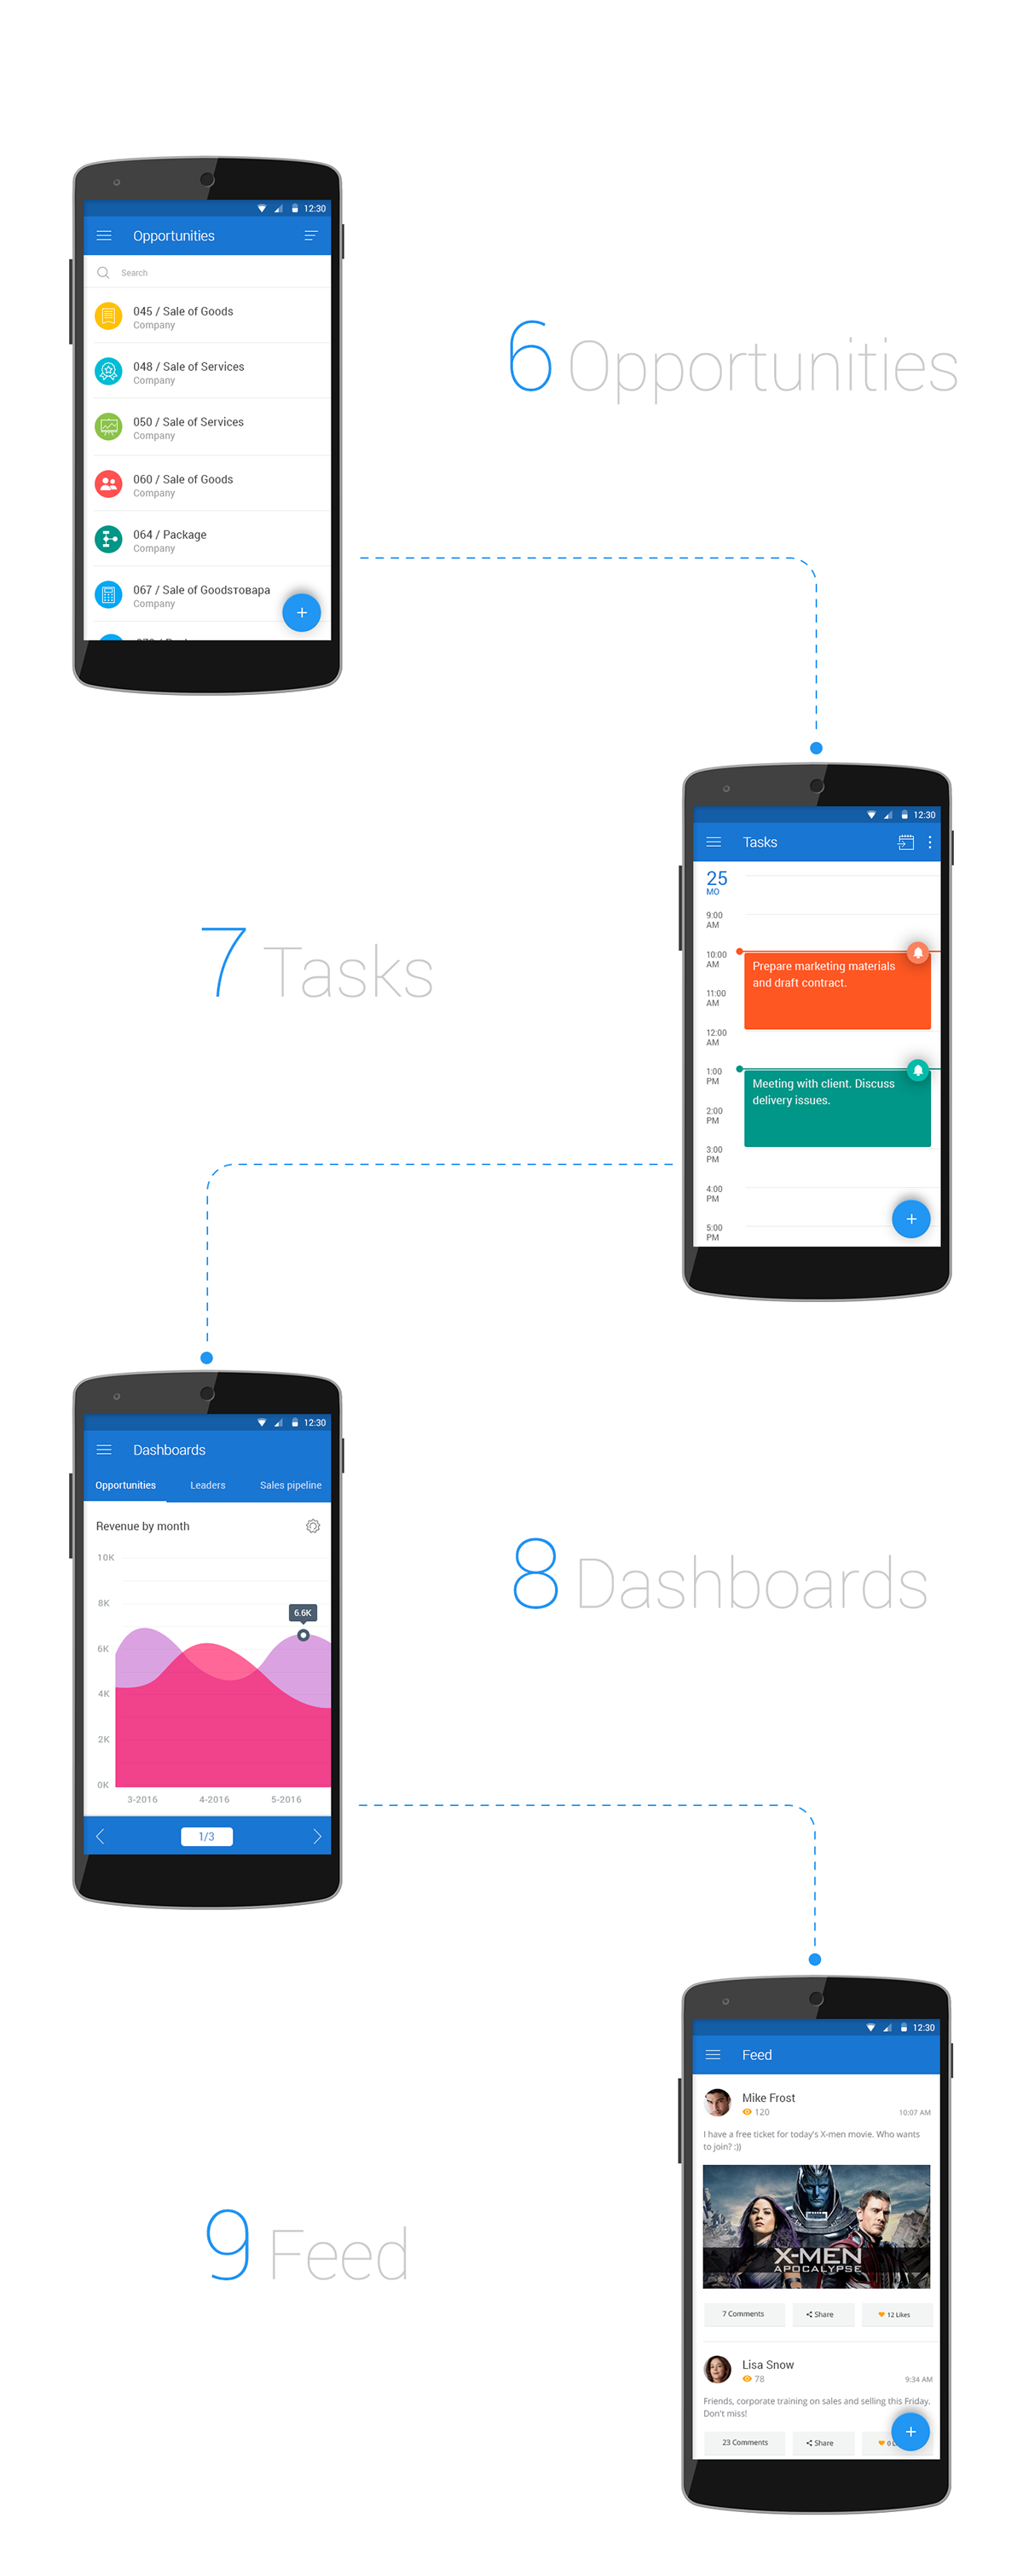 Free crm mobile app psd template free design resources for Facebook app template psd